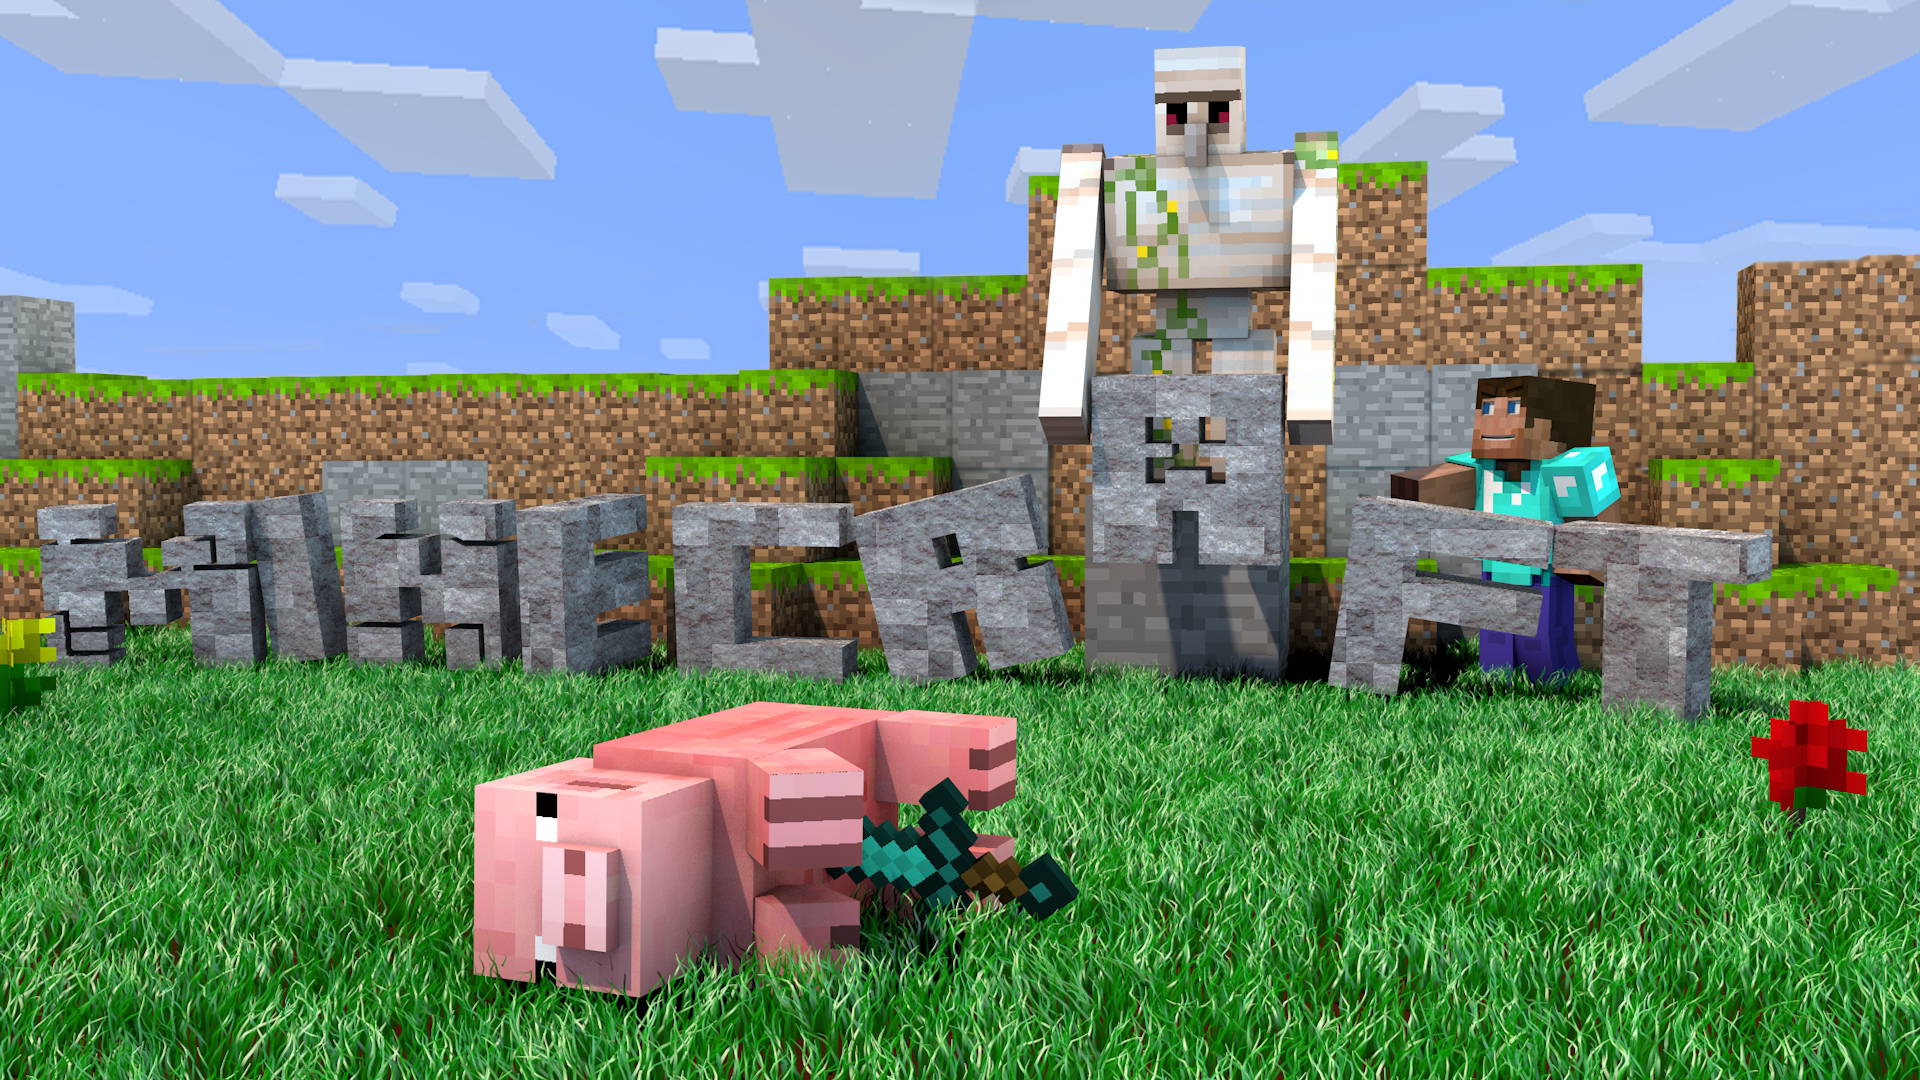 Minecraft Baby Pig Wallpaper Images Pictures Becuo 1920x1080